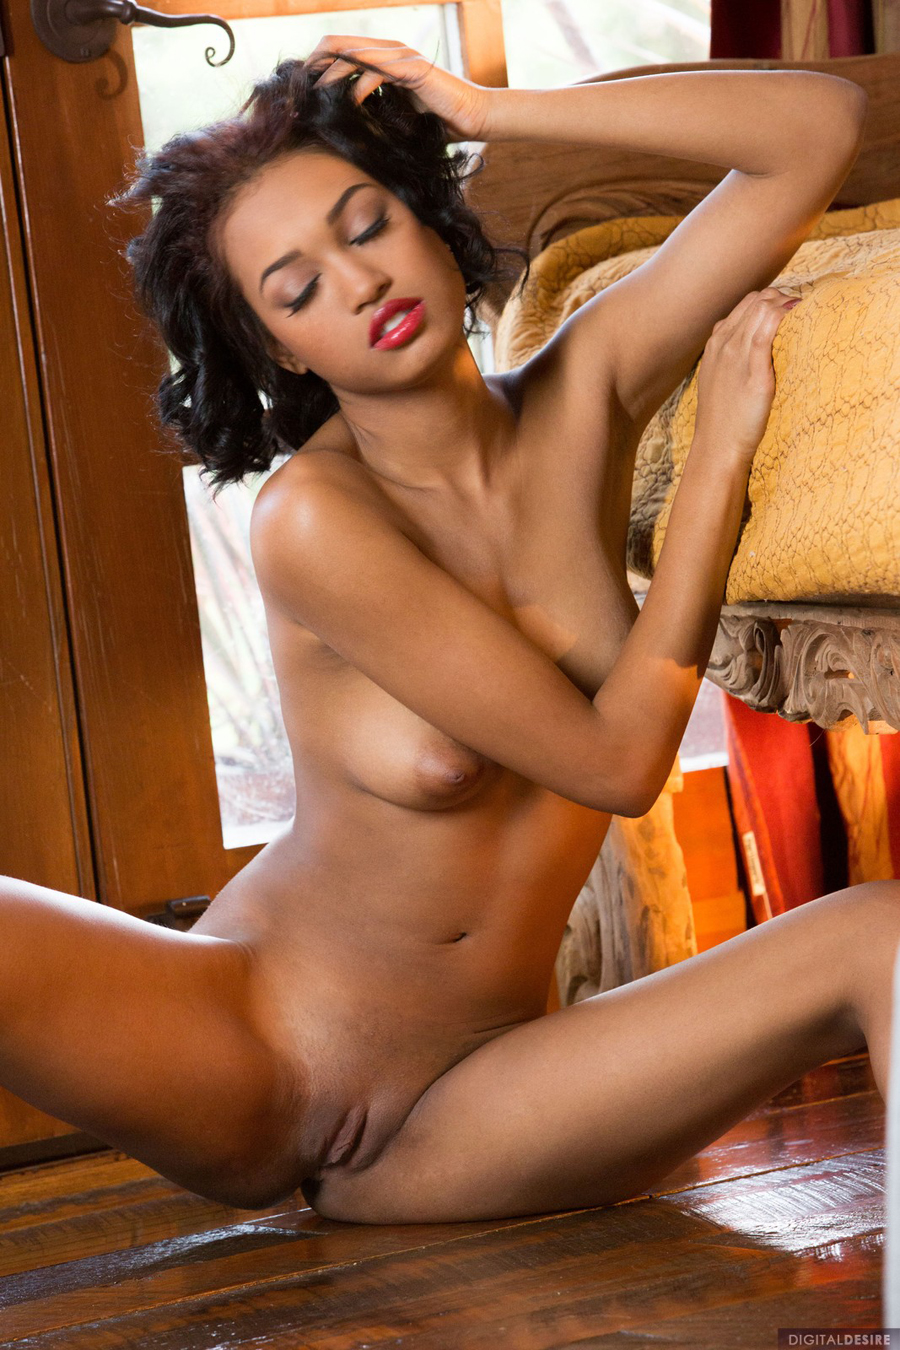 Hot ebony babe plays with butt plug amp vibrator in stockings 7